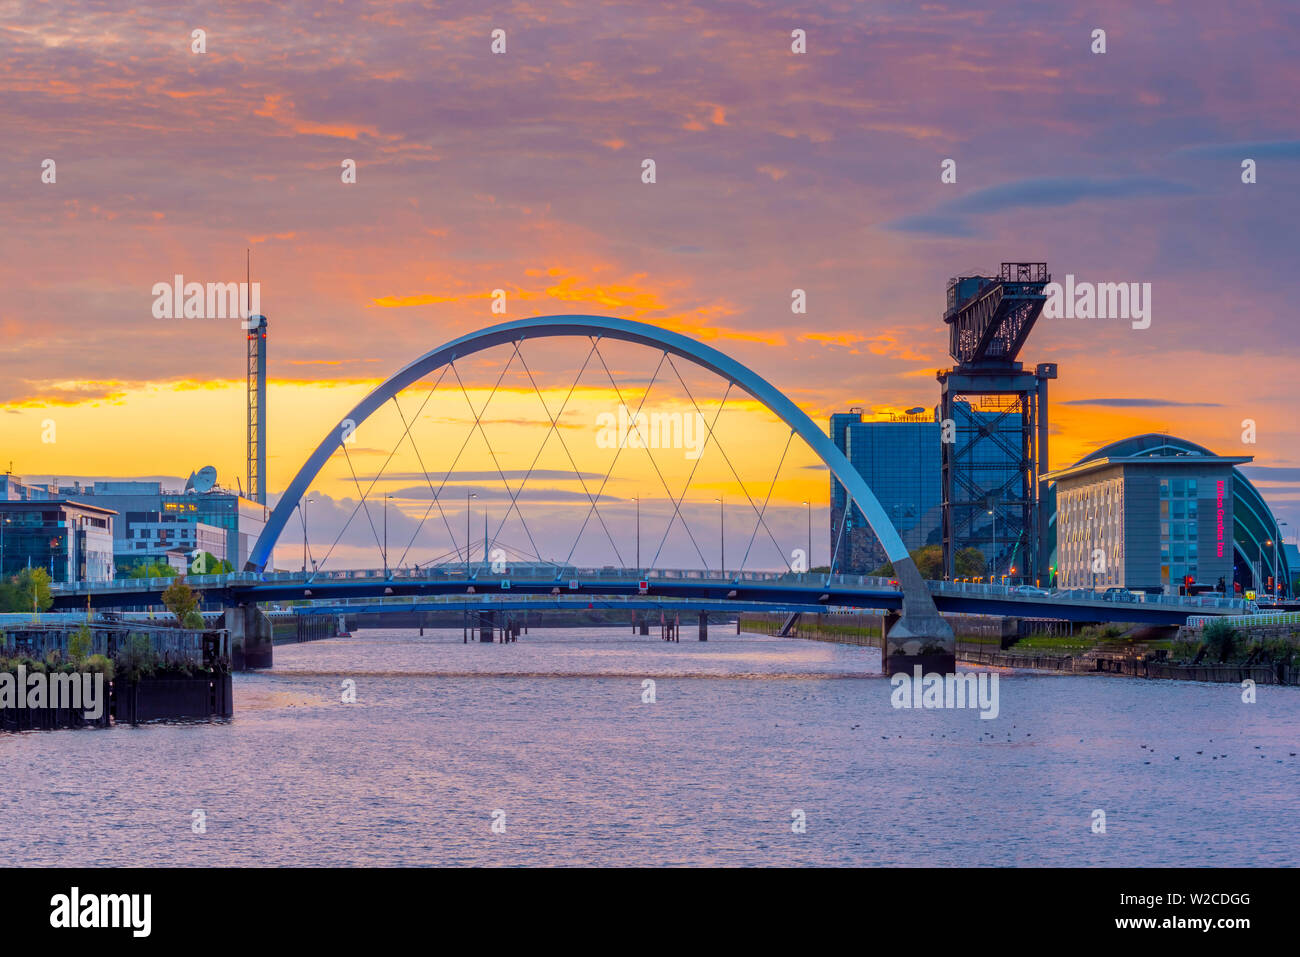 UK, Scotland, Glasgow, River Clyde, Finnieston Crane and the Clyde Arc, nicknamed the Squinty Bridge Stock Photo